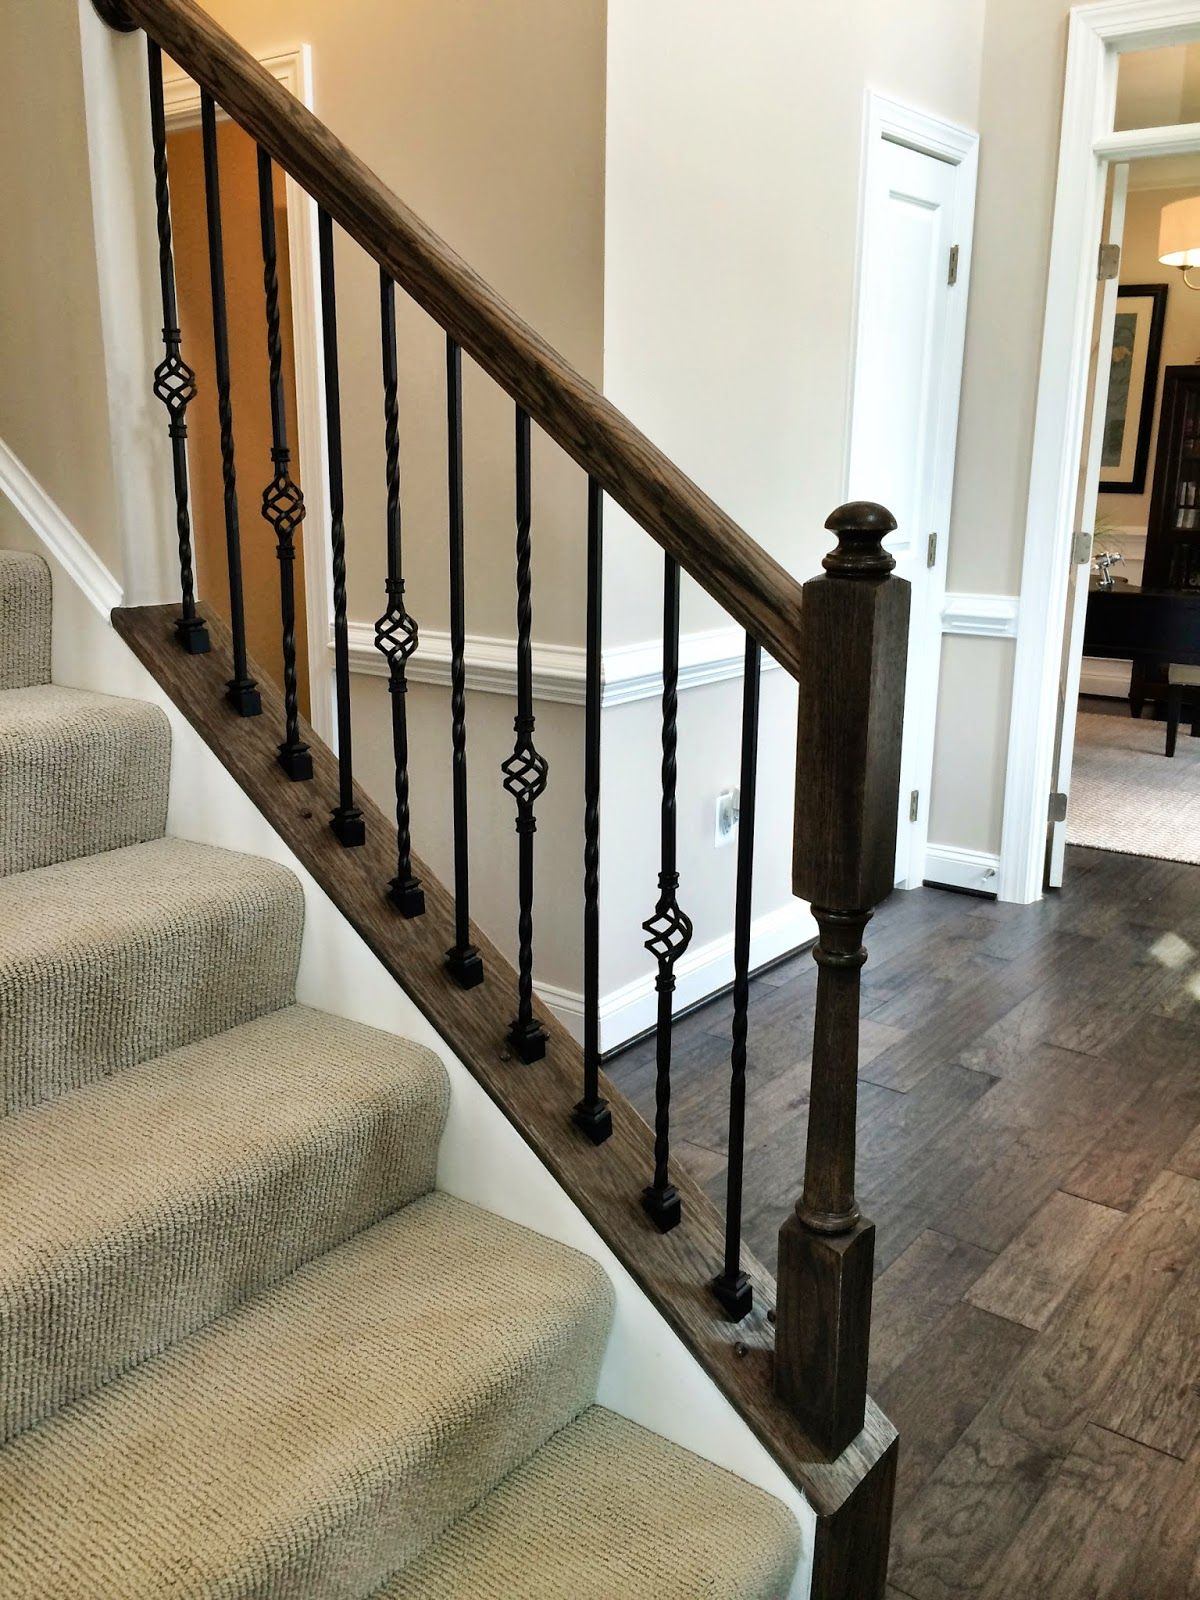 Best Ryan Homes Build Love The Metal Balusters Building A 400 x 300